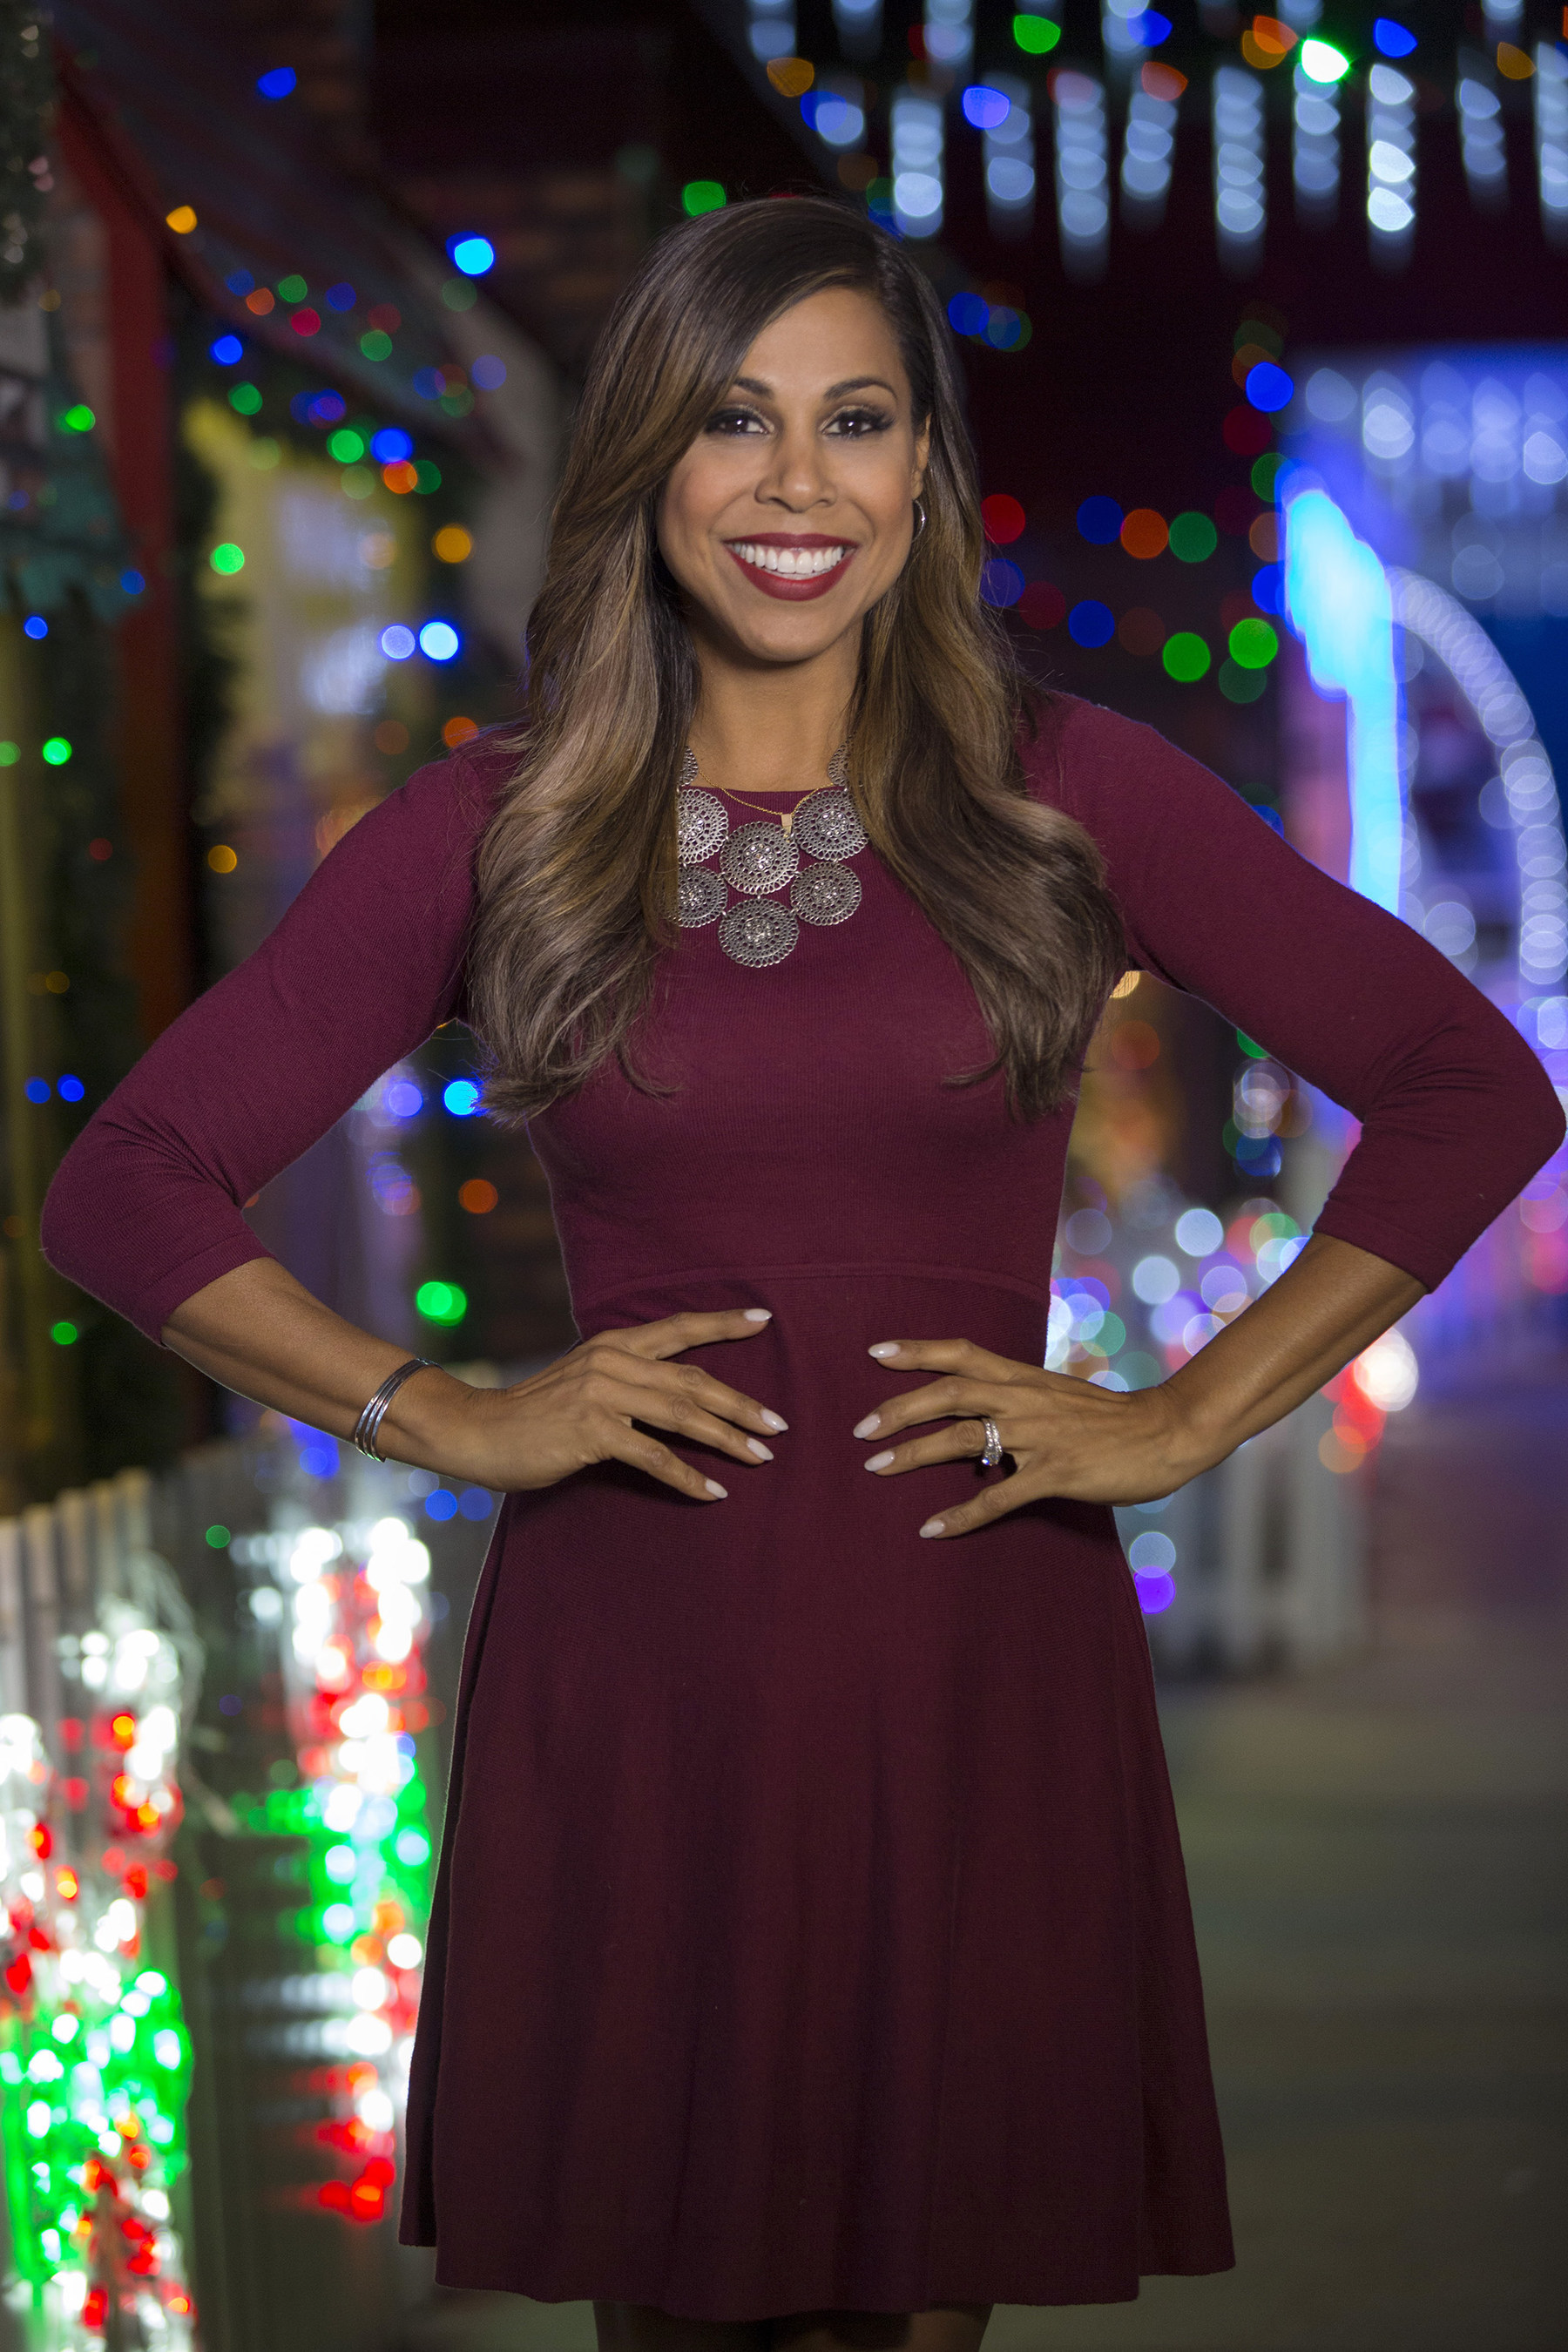 Riverbend Home Teams Up With Interior Designer Taniya Nayak To Help Homeowners Create Holiday Magic Through Home Décor